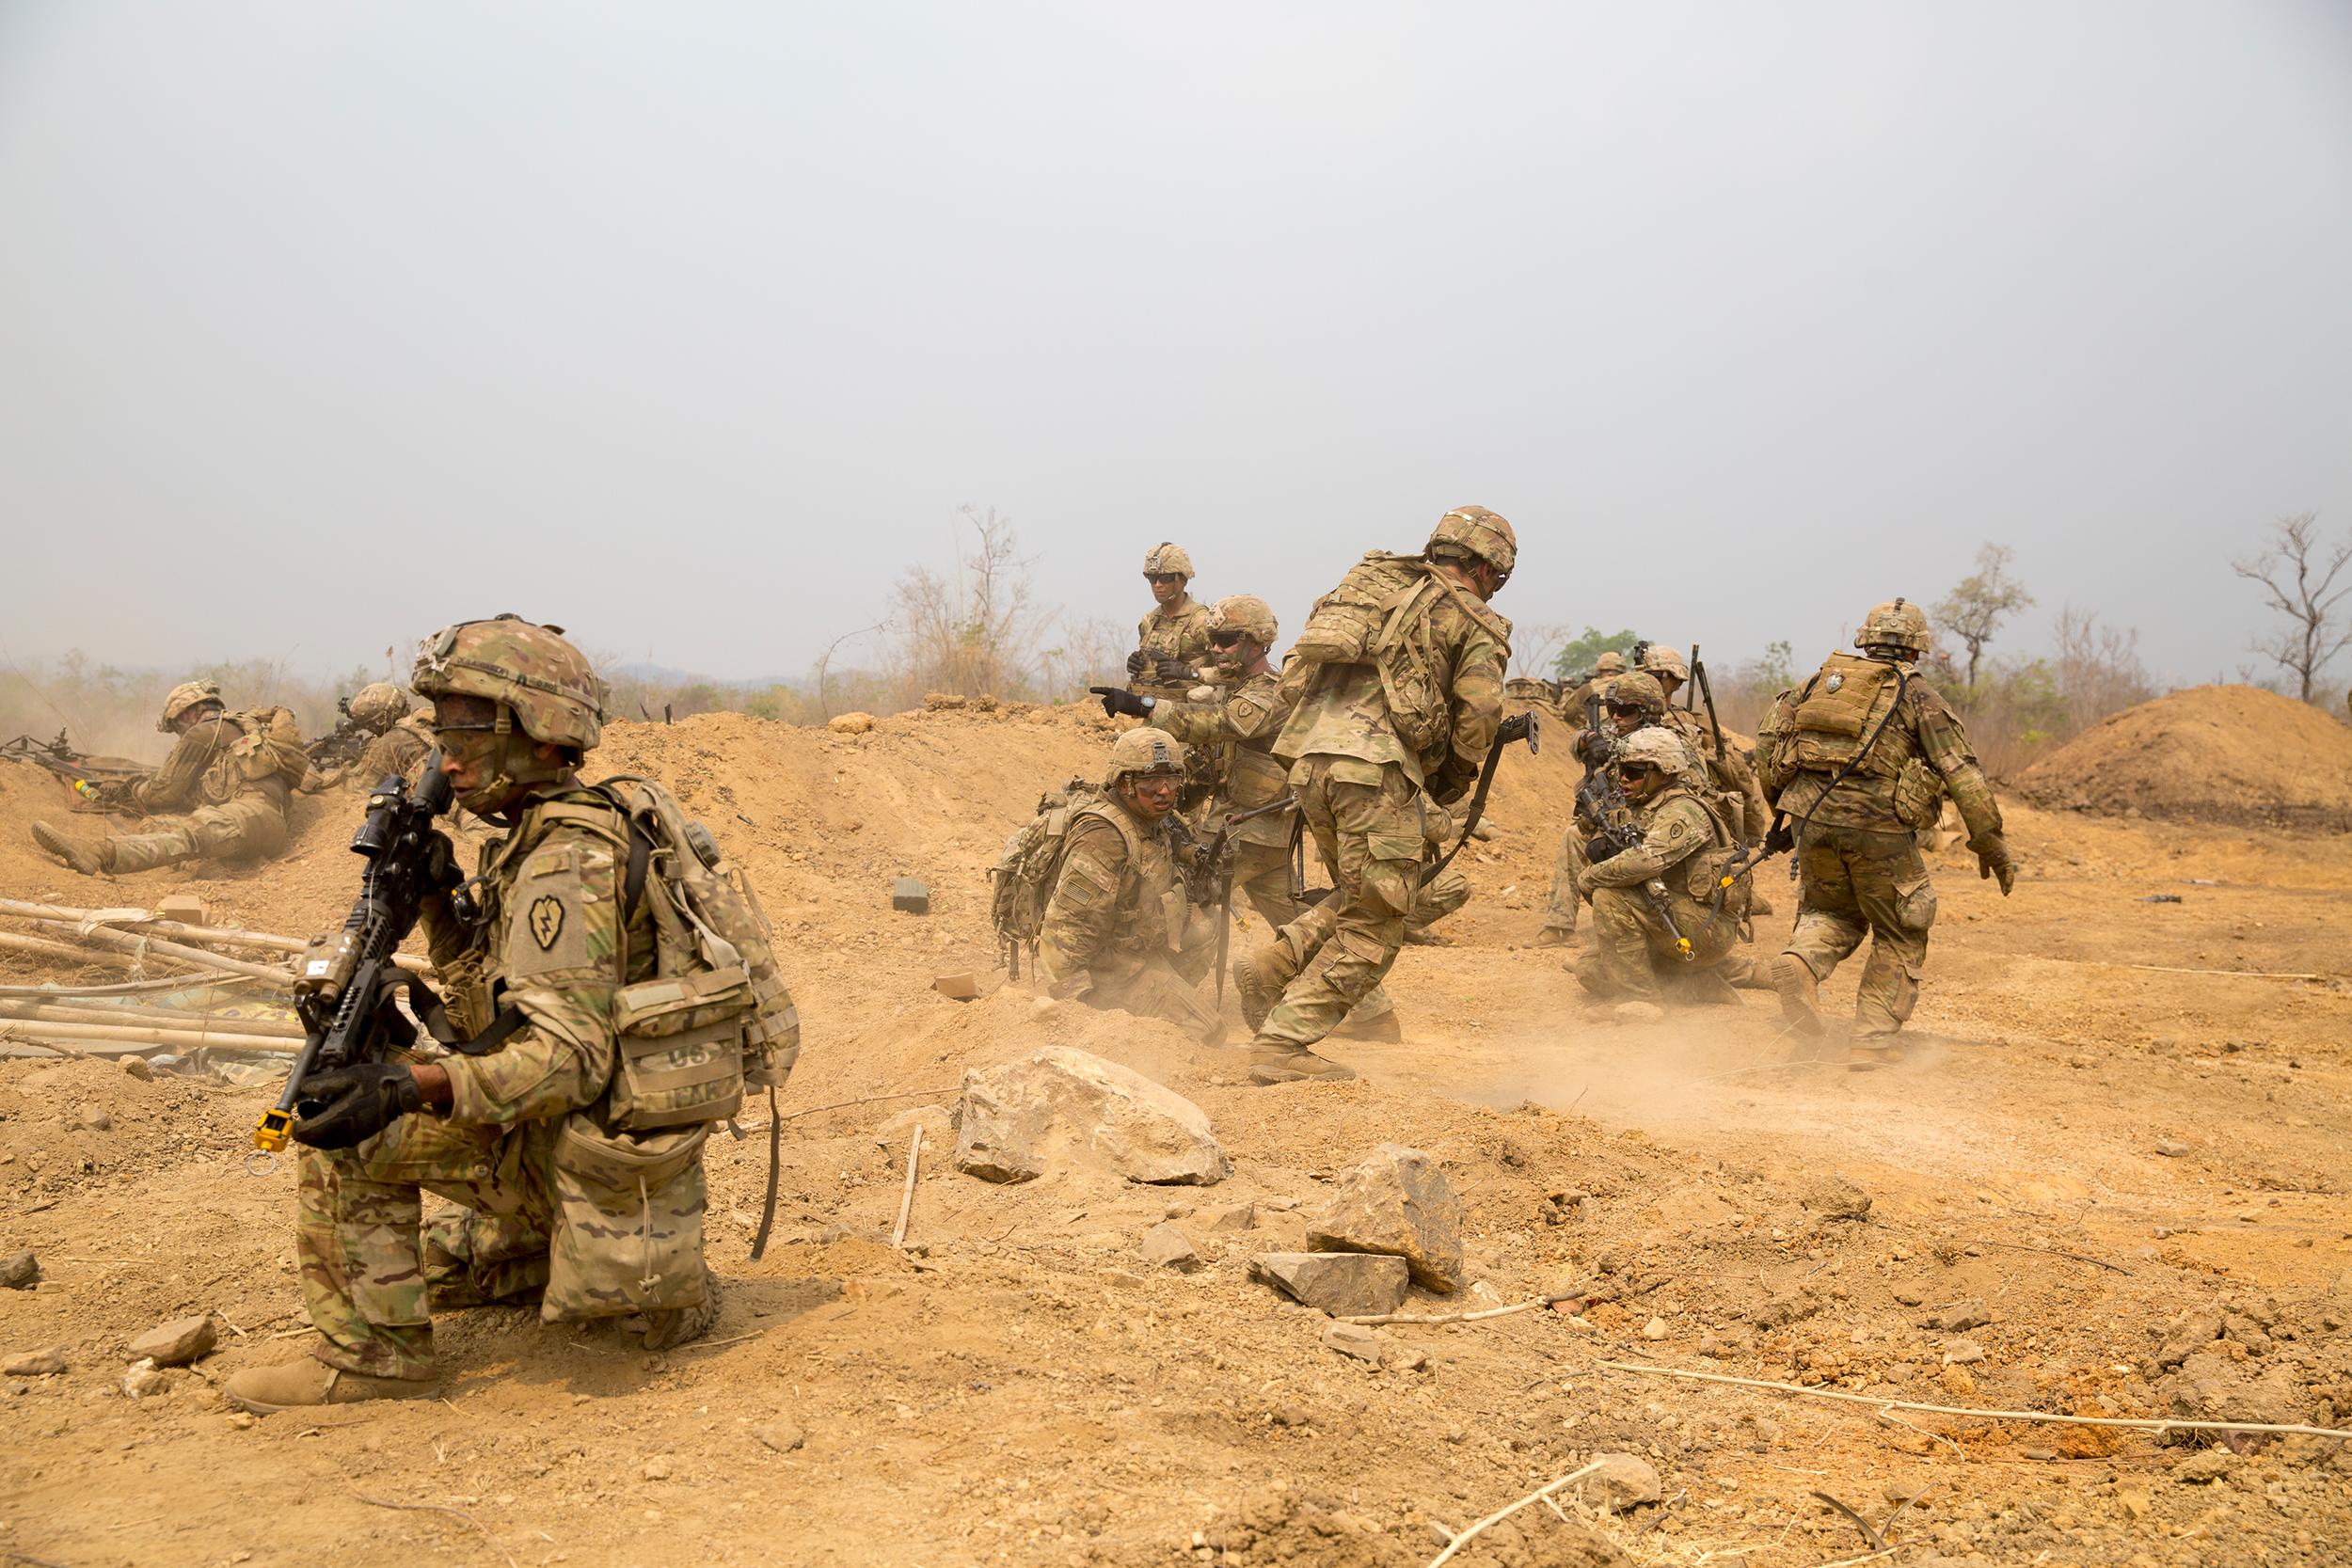 U.S. Army soldiers with 25th Infantry Division, 3rd Squadron, 4th Cavalry Troop, crouch behind a dirt berm after a Bangalore torpedo explosion on March 2, 2020, while preparing for a combined arms live fire exercise during Exercise Cobra Gold 2020 at Ban Dan Lan Hoi, Kingdom of Thailand. (Lance Cpl. Kaleb Martin/Marine Corps)